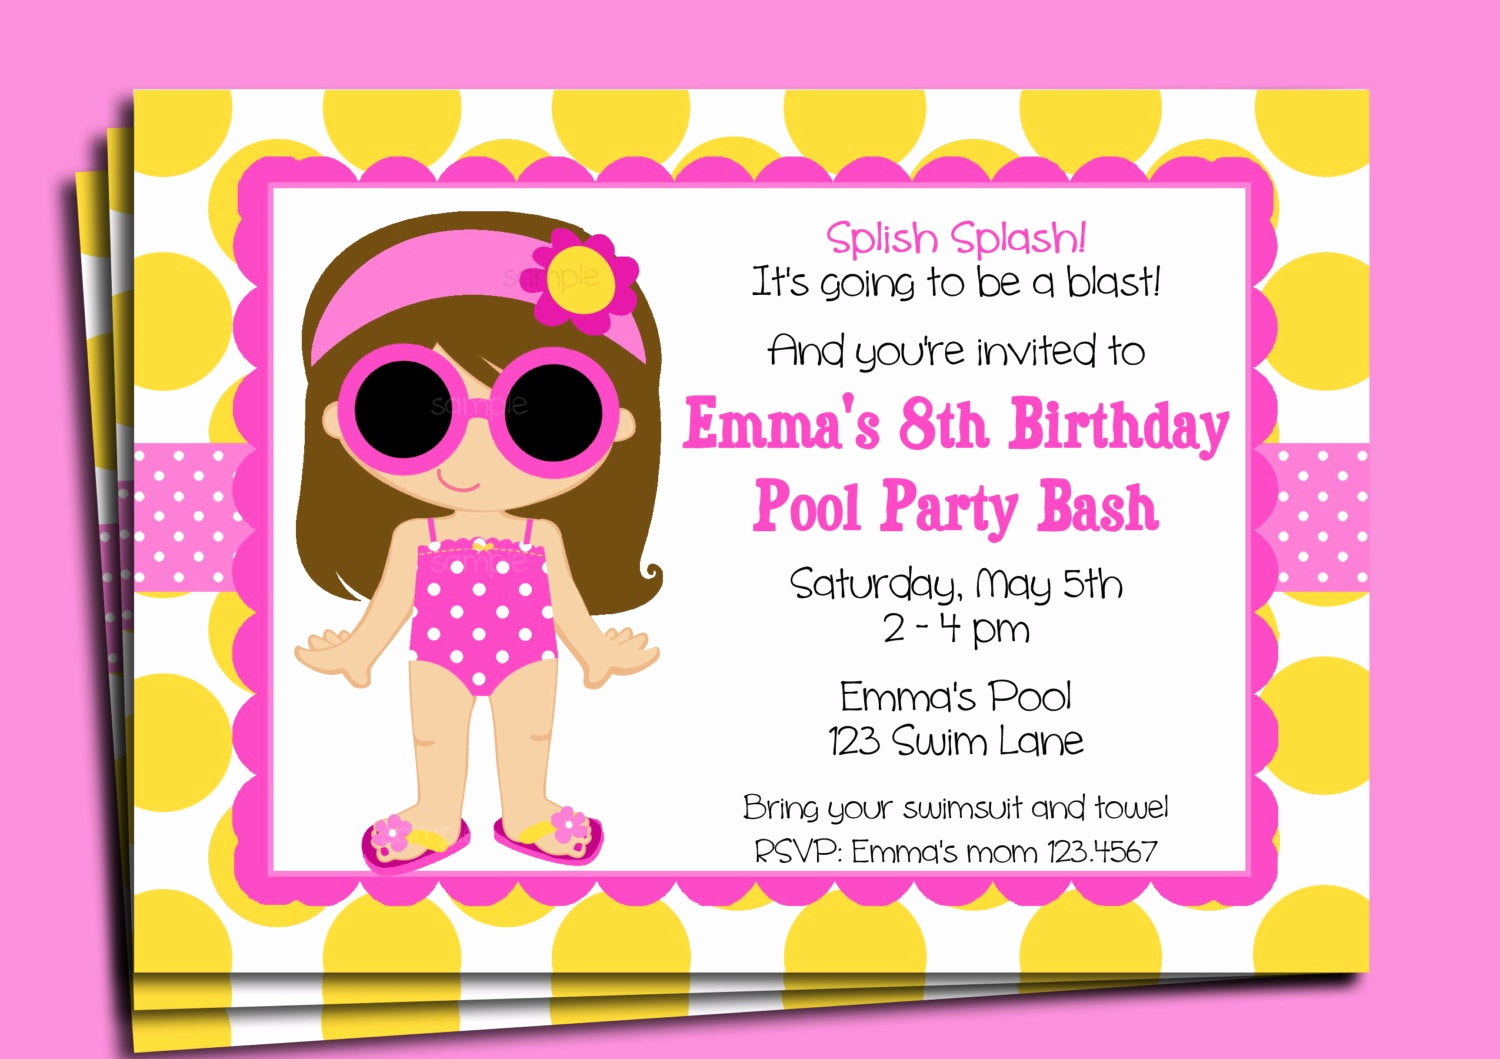 Kids Pool Party Invitation Lovely Pool Party Invitation Printable or Printed with Free Shipping